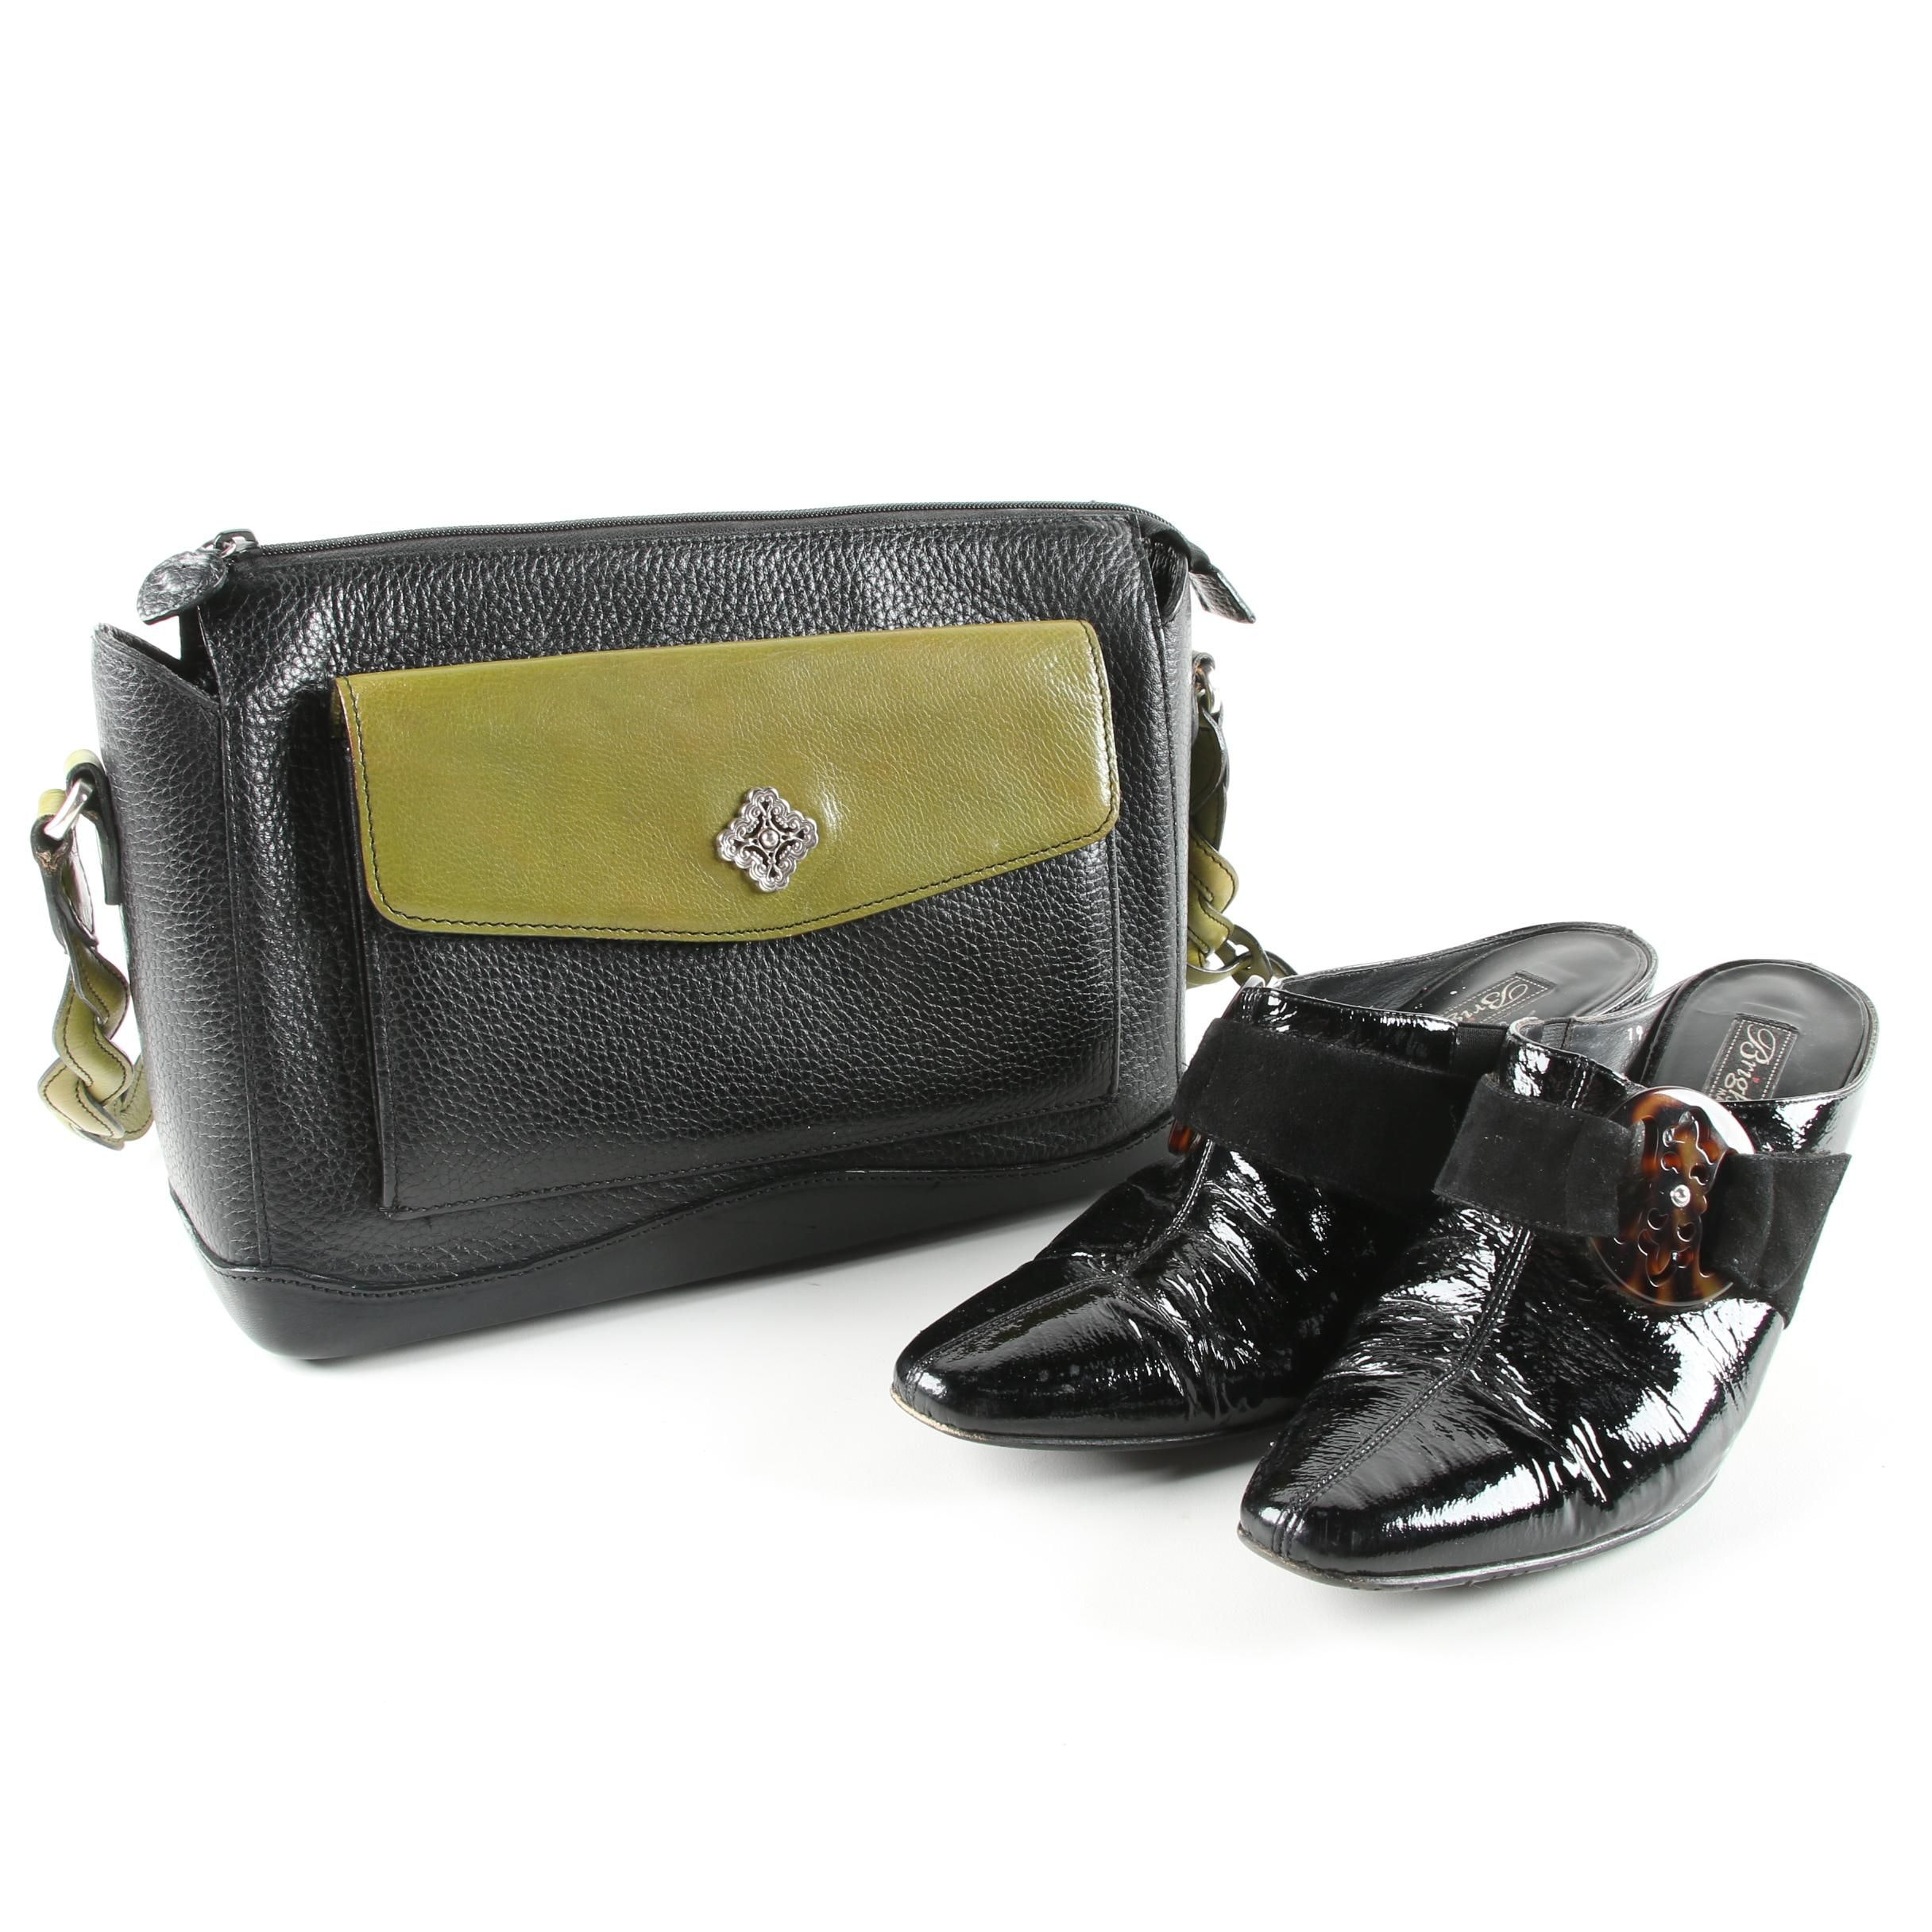 Brighton Rococo Black Patent Leather Mules and Black and Olive Leather Bag